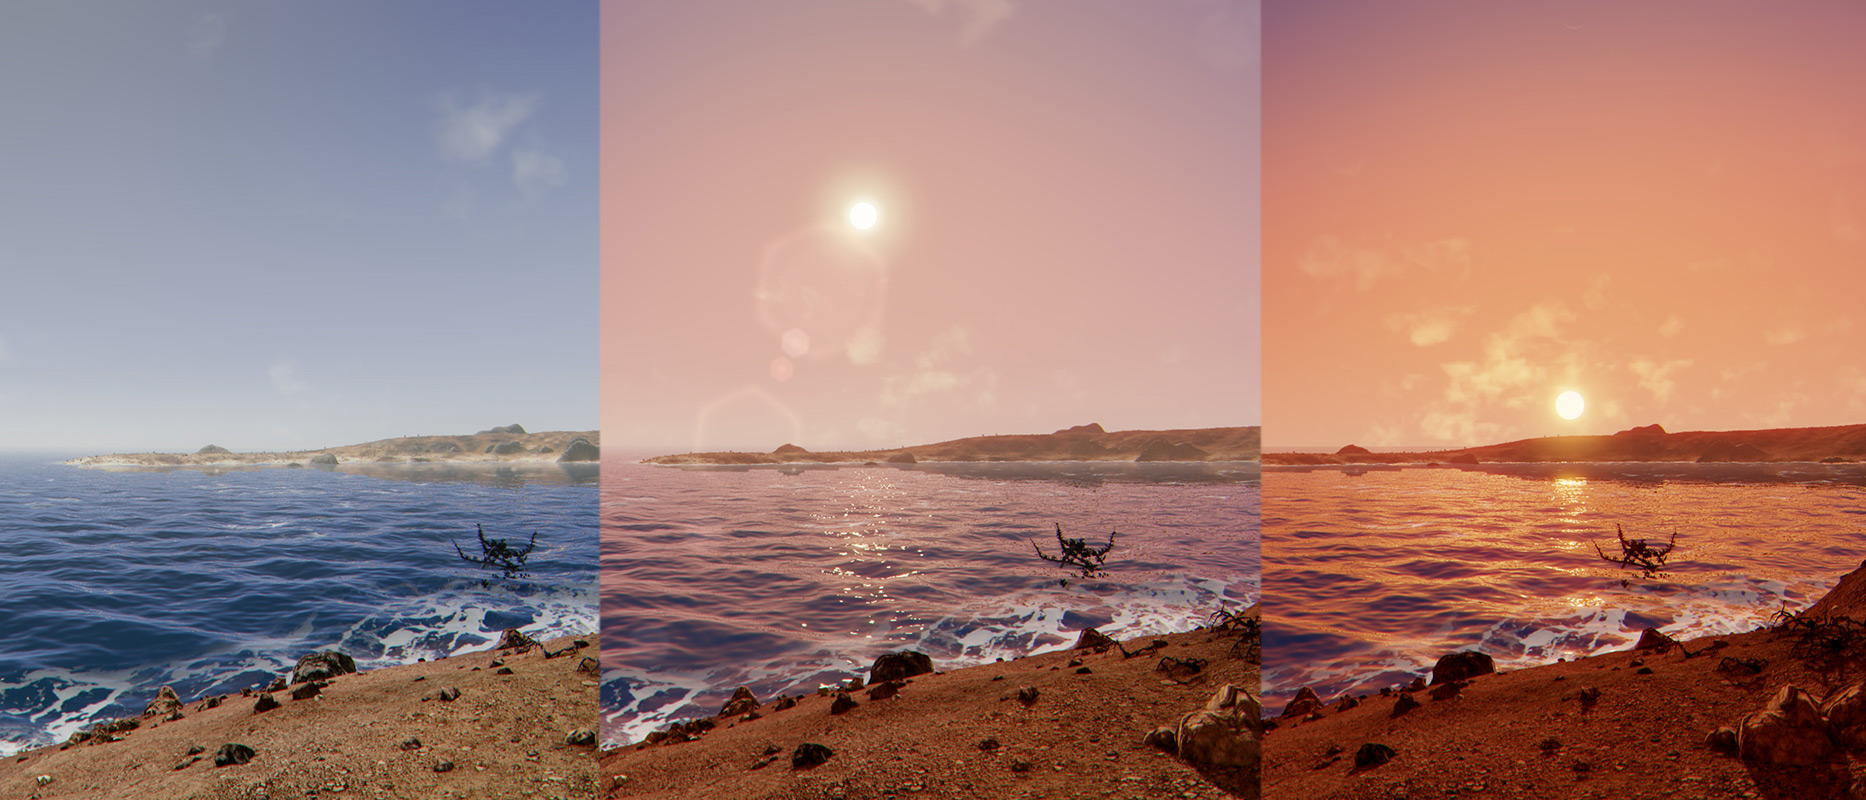 These are some examples of non-real-time photos taken from the game Extrasolar. Click to see the full resolution.